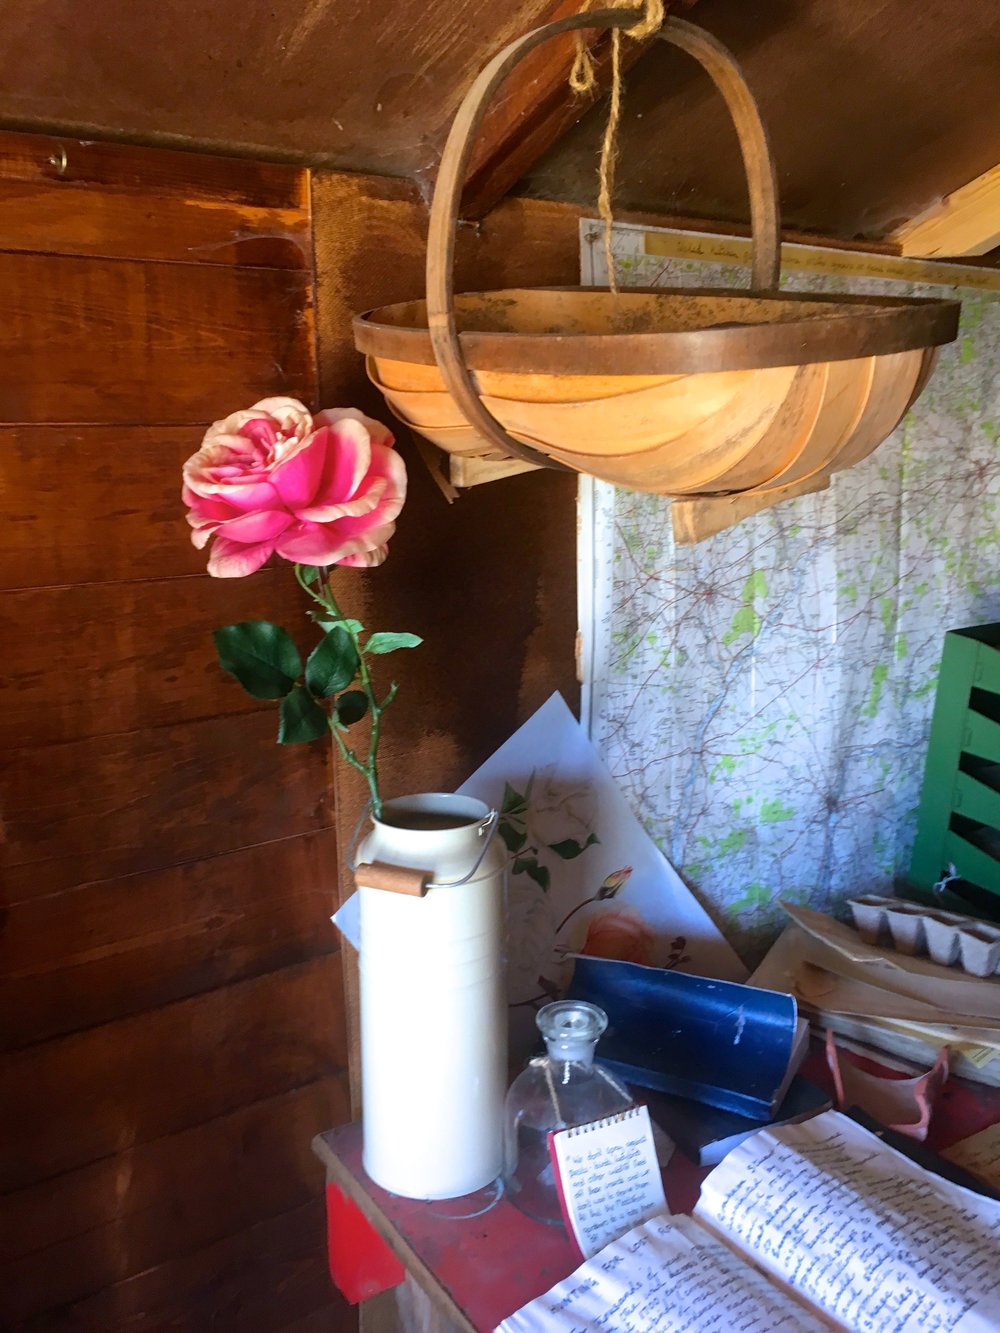 A real rose alongside a trug and other paraphernalia in the potting shed at mottisfont